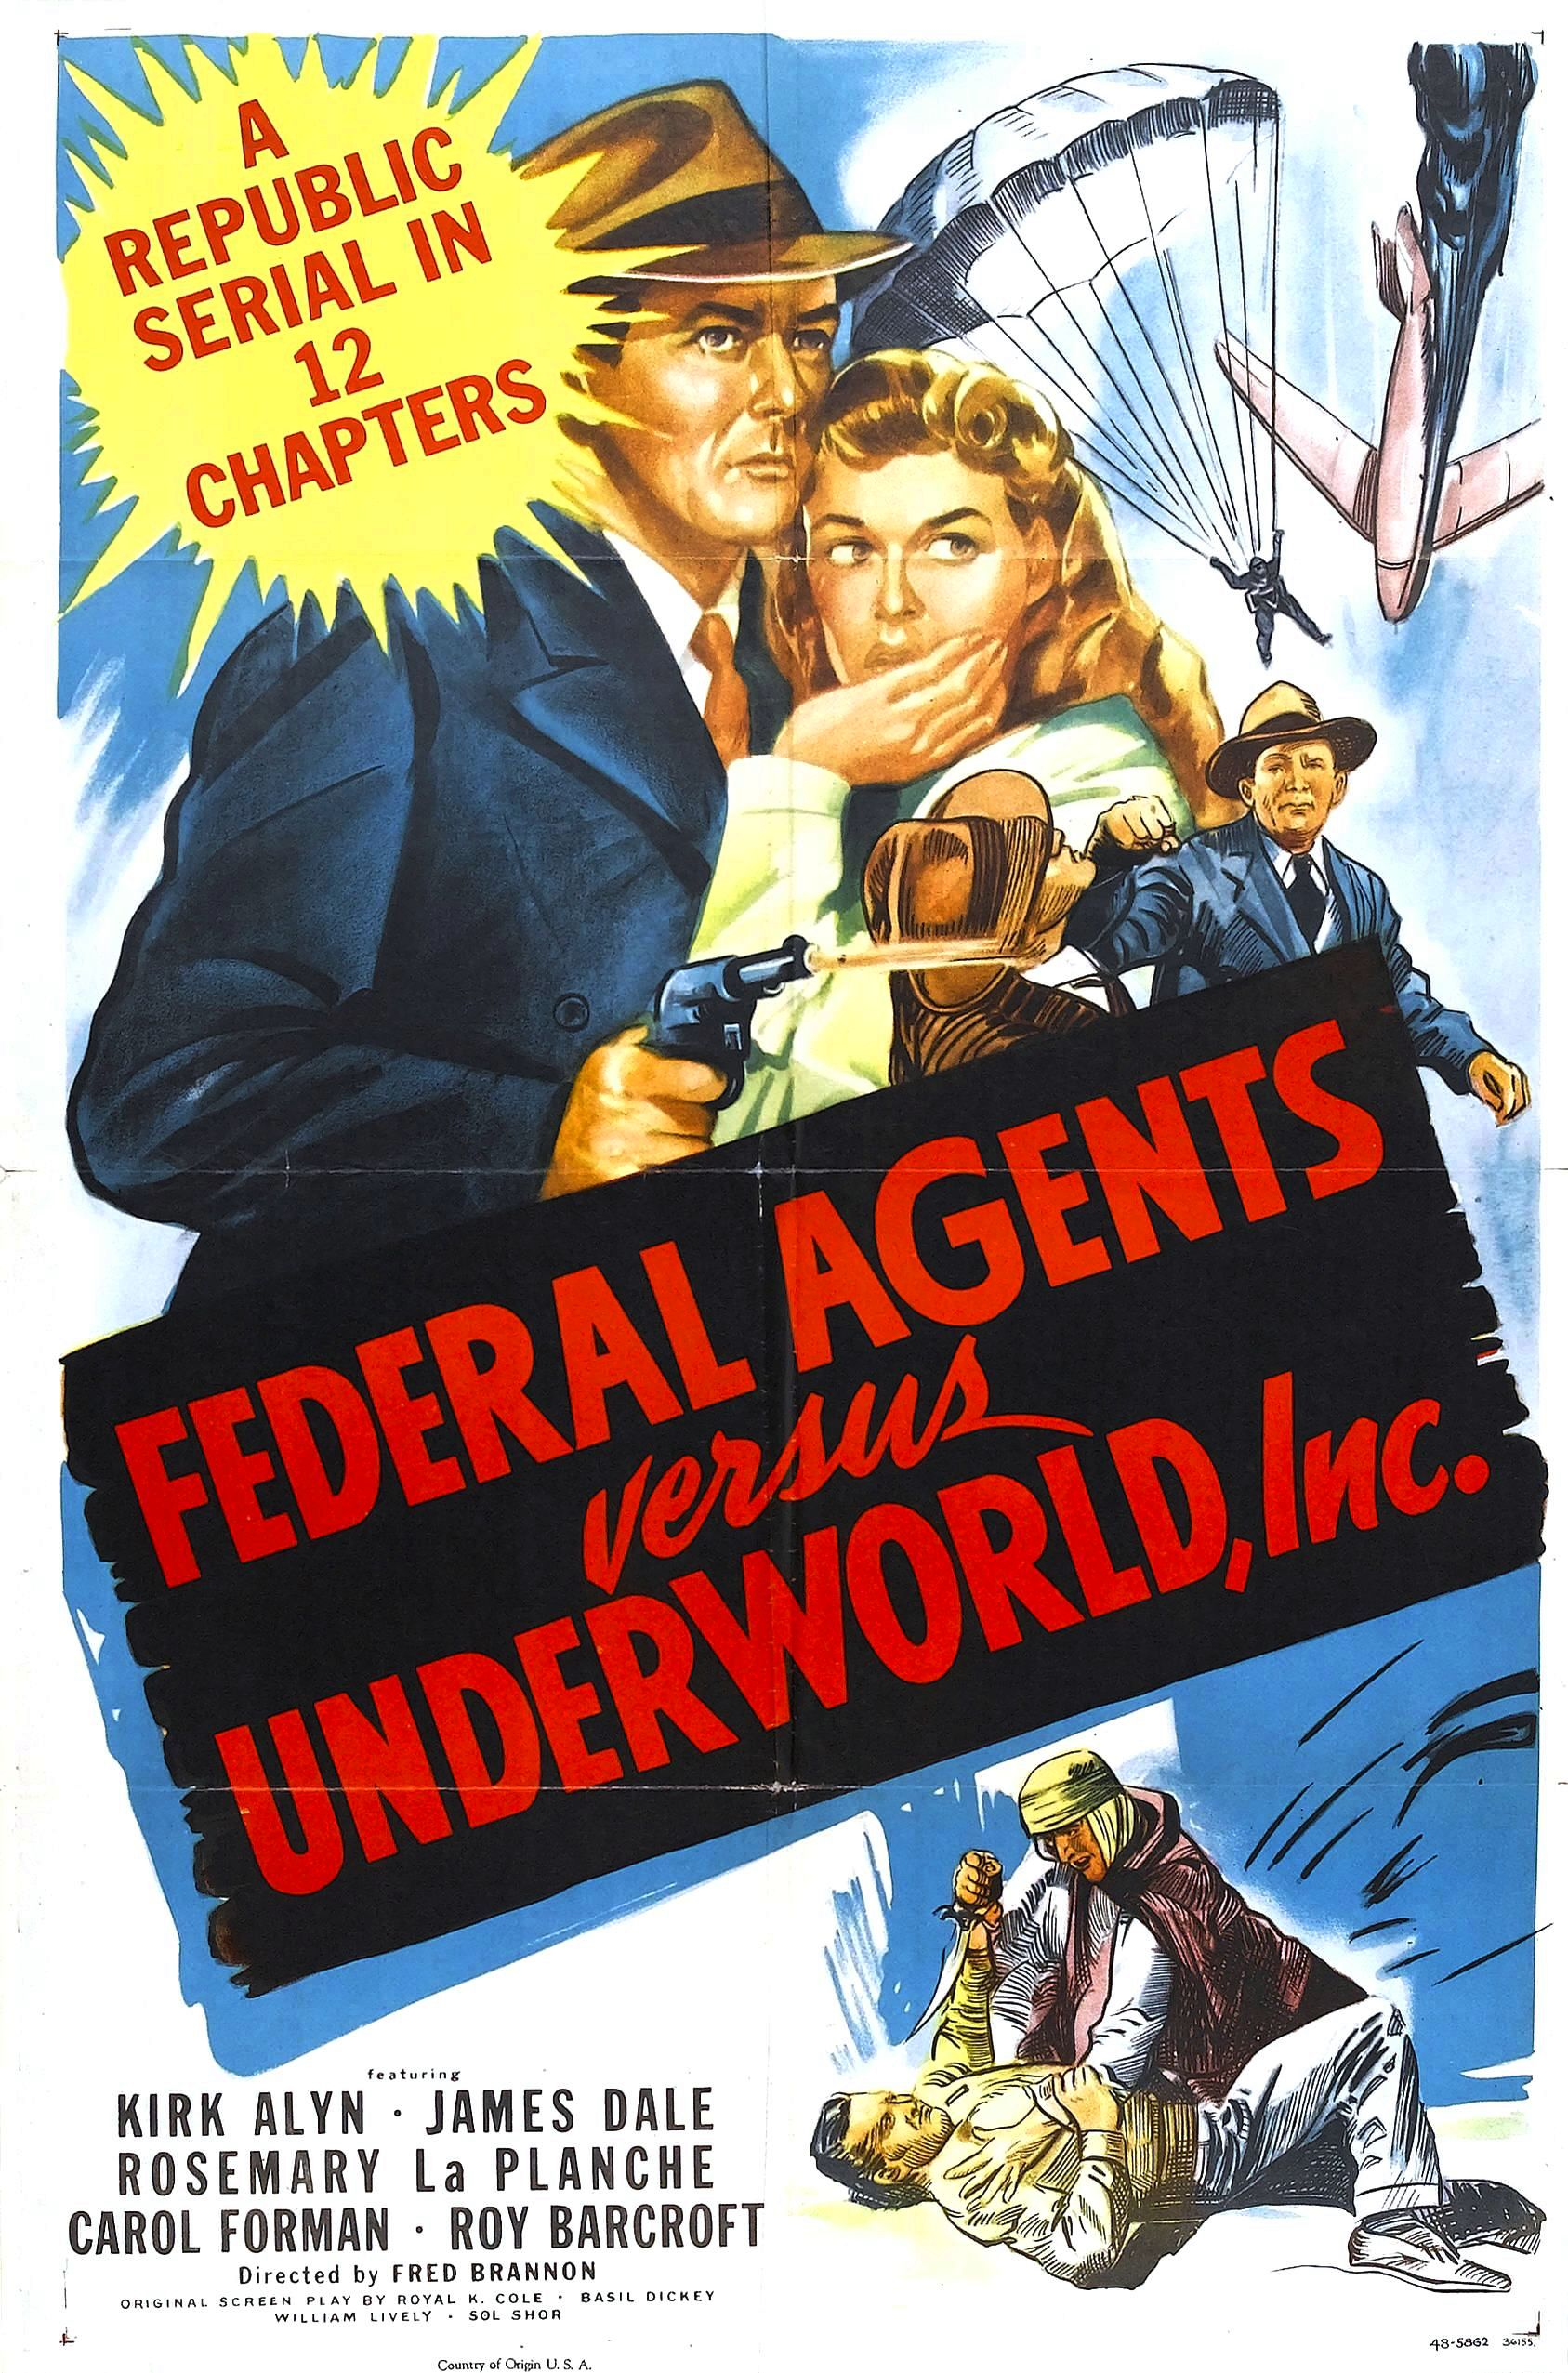 Federal Agents vs. Underworld, Inc. (1949)